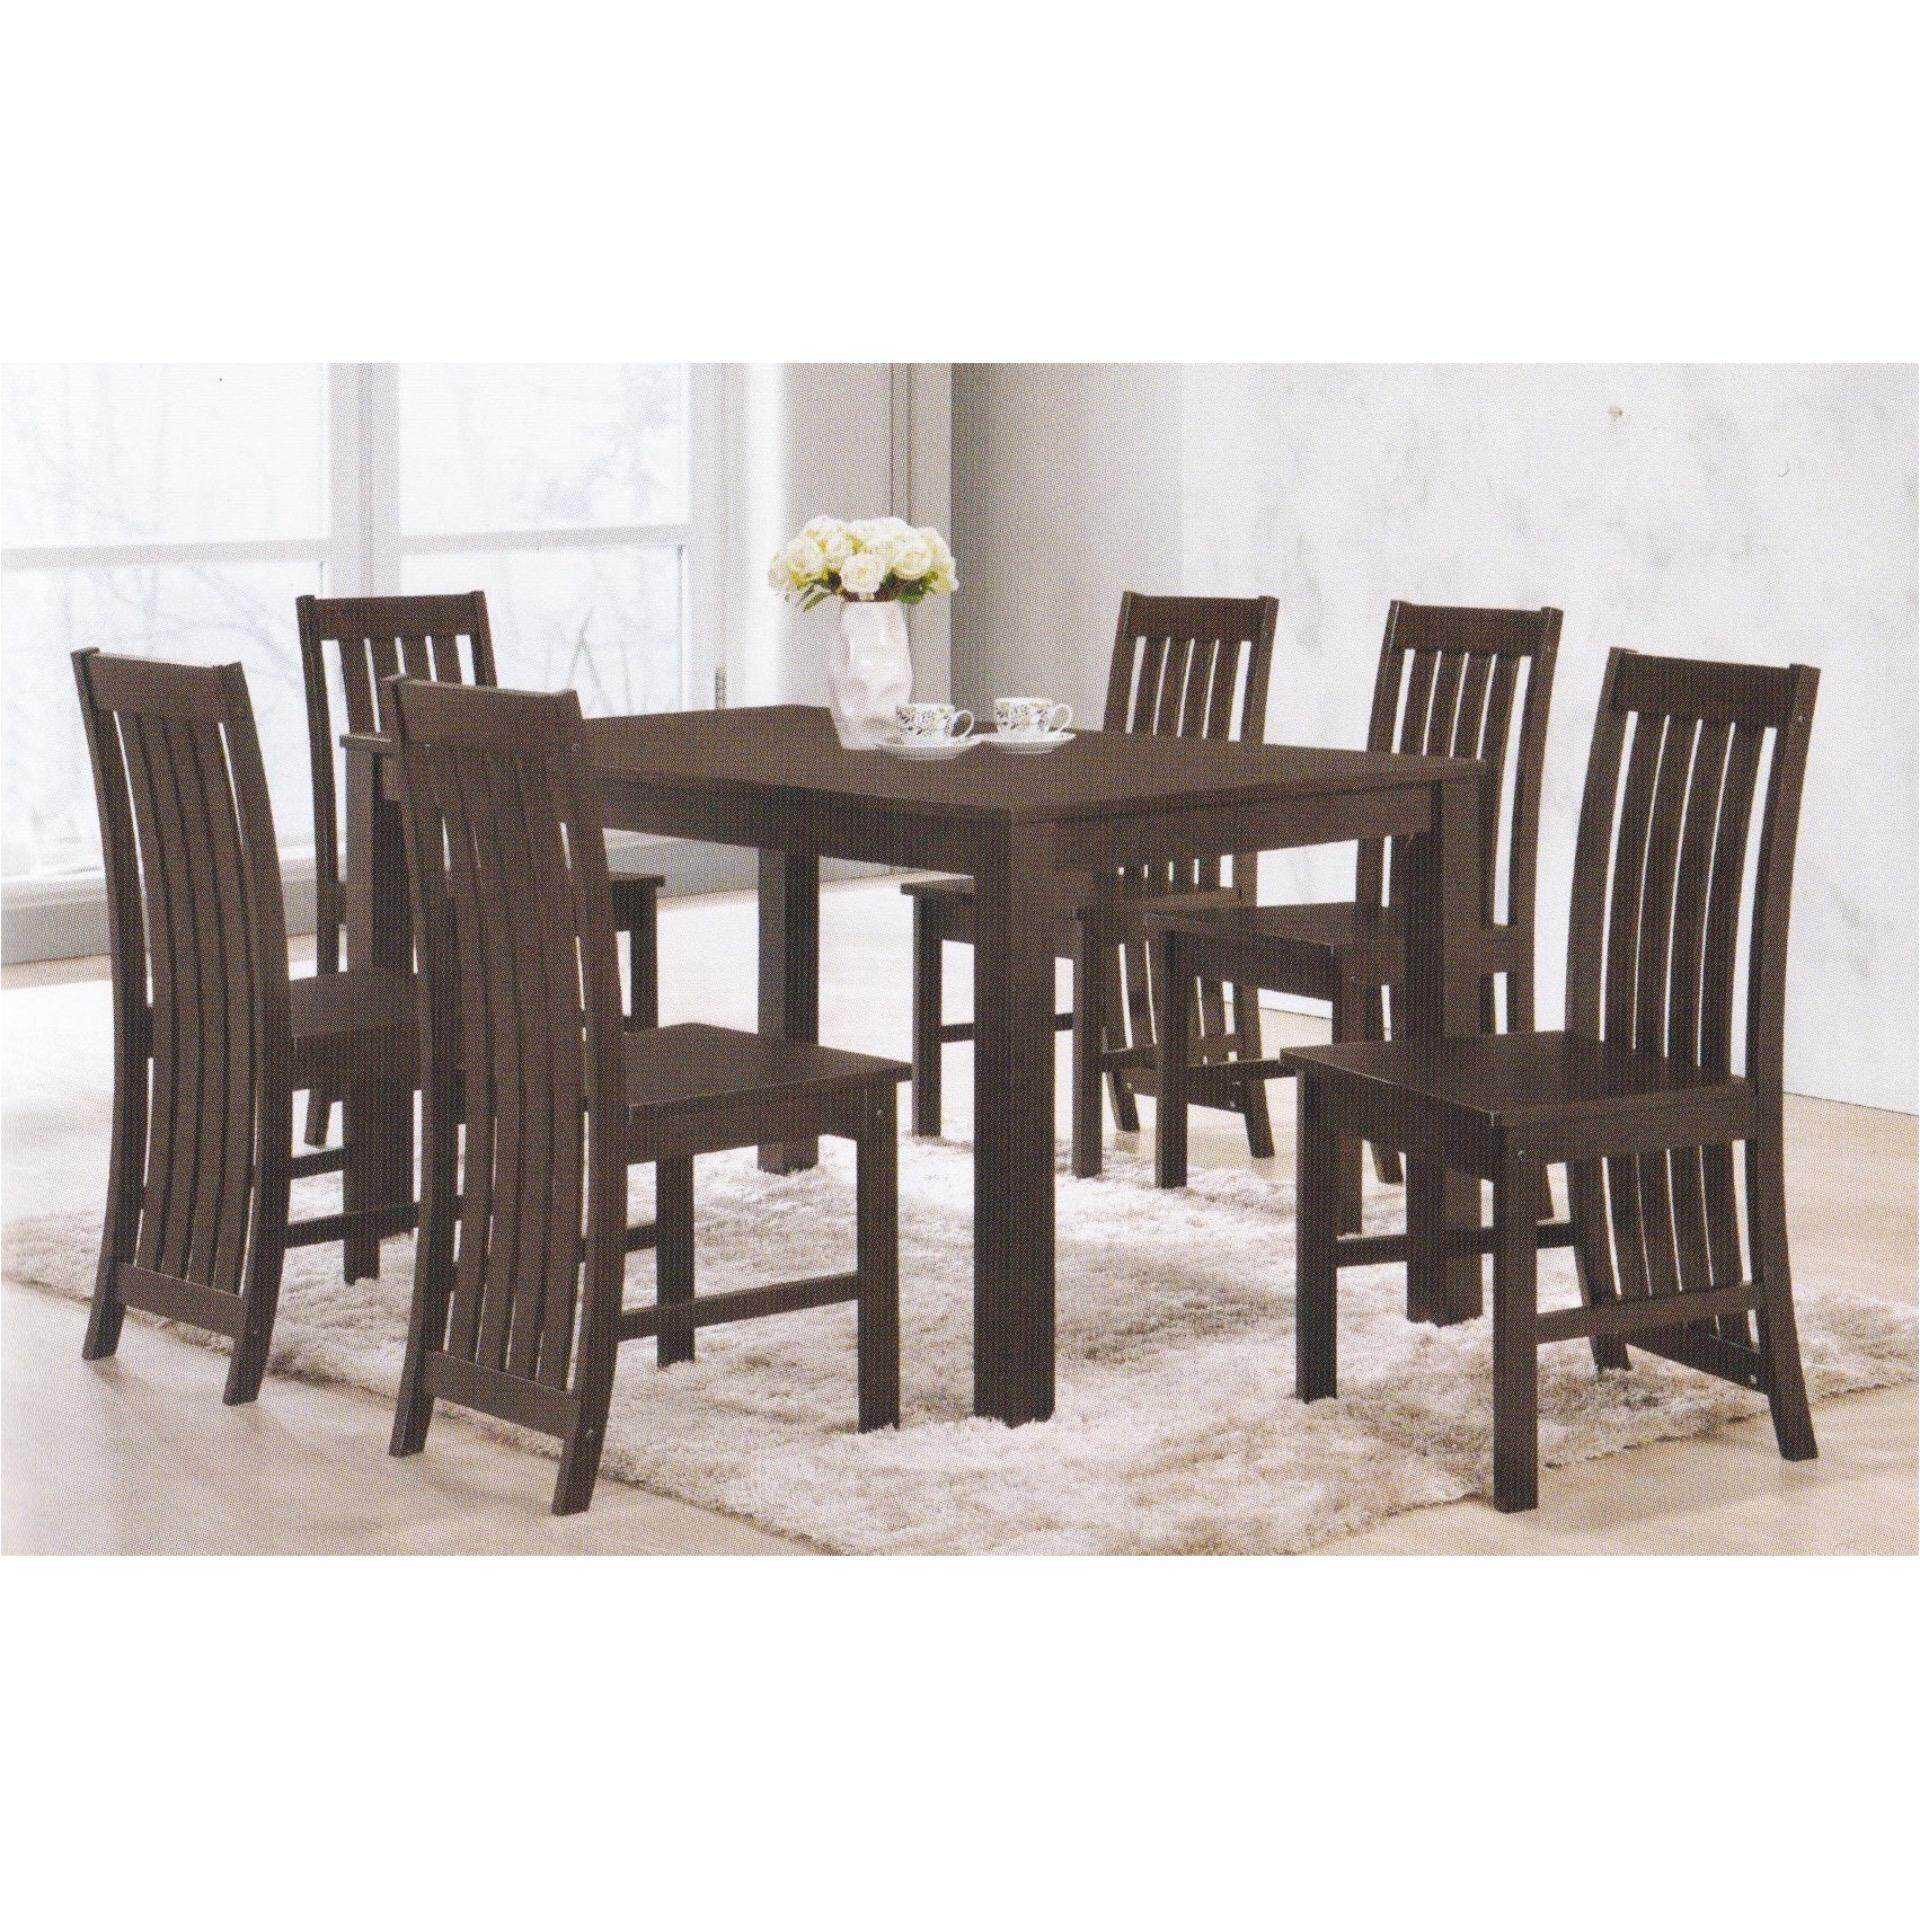 Solid Wood 1+6 Dining Table Chair Set (Walnut)